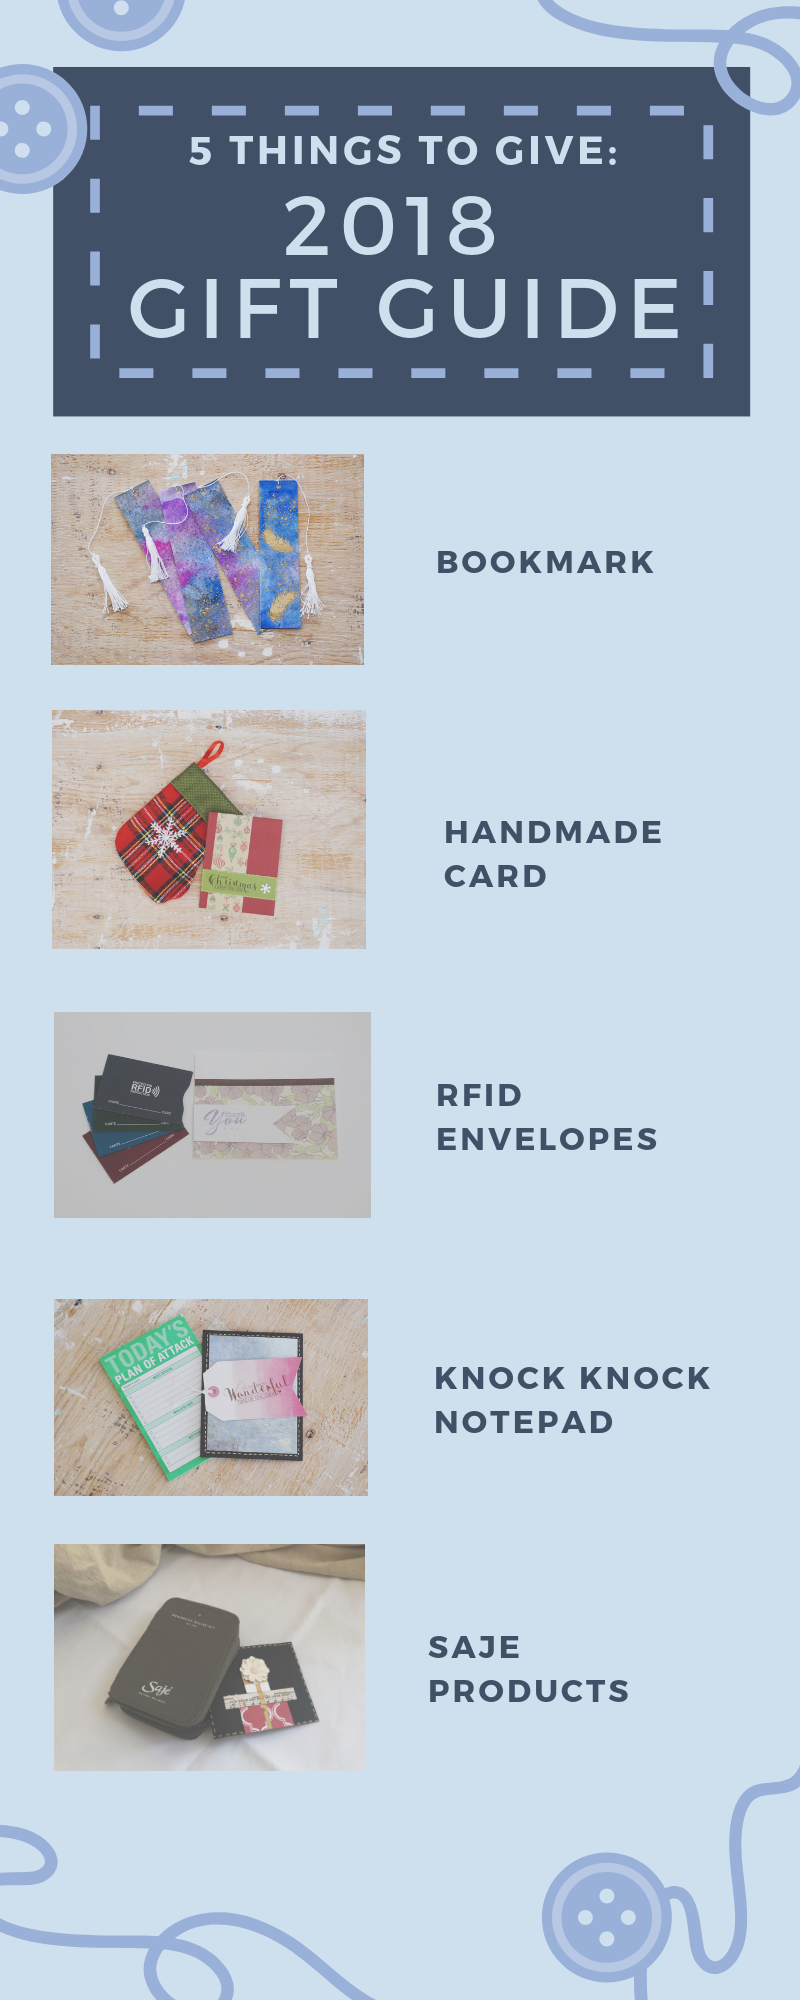 Infographic | 5 Things to Give: 2018 Gift Guide | Thoughtfully Handmade